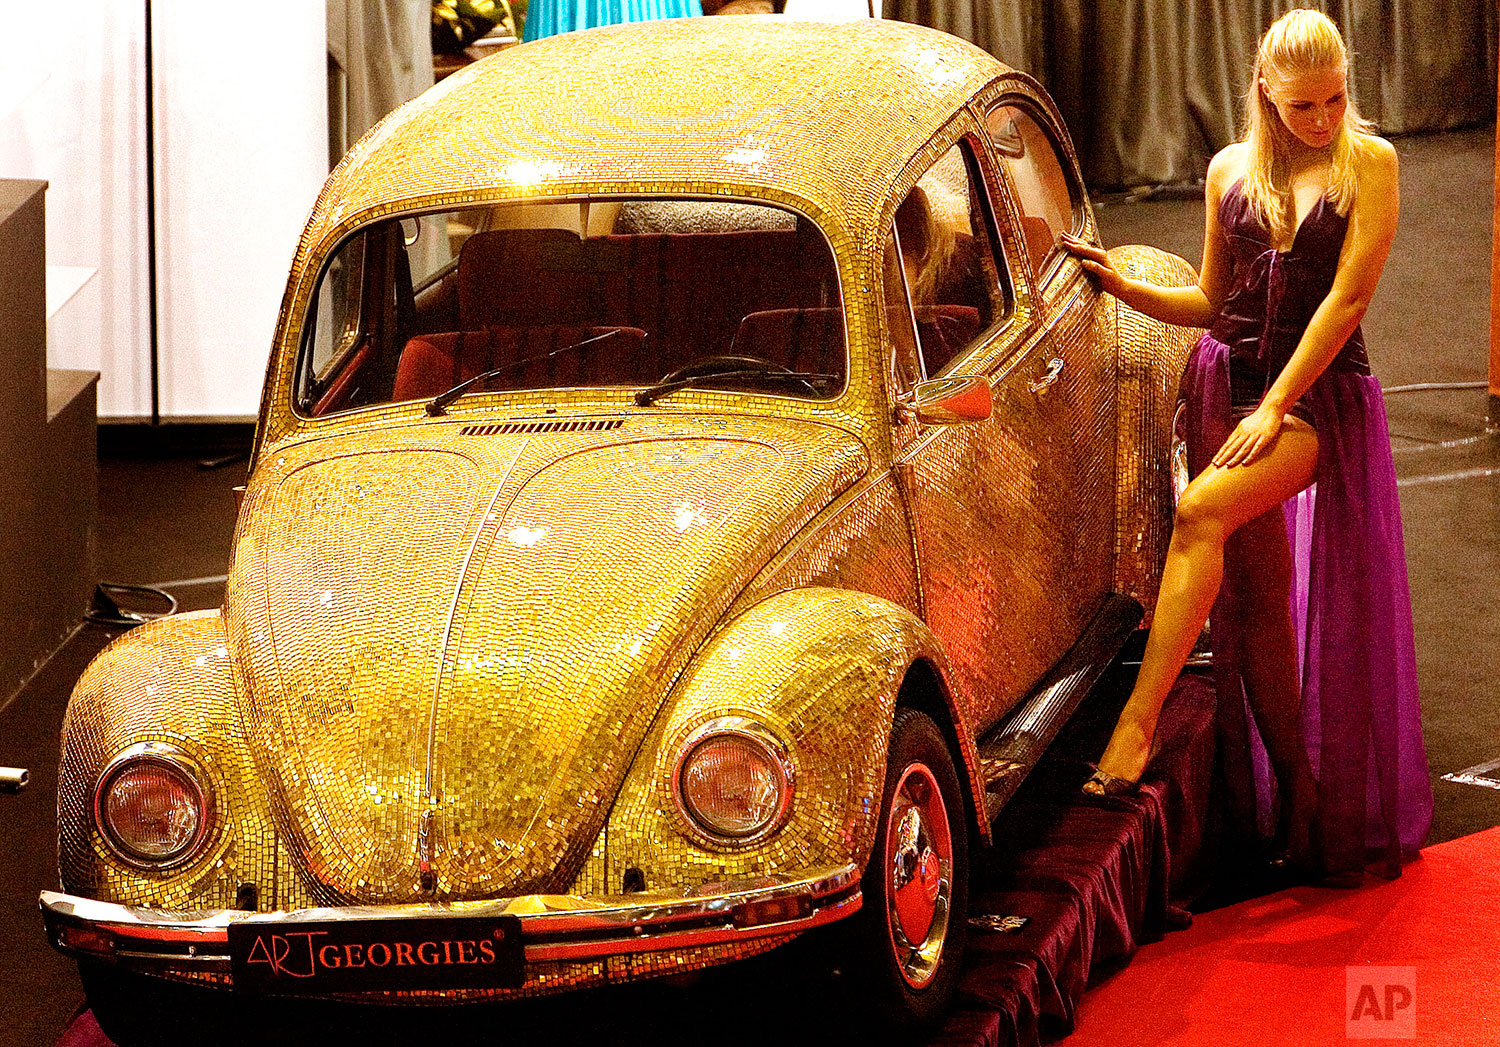 A model poses next to a 1968 Volkswagen Beetle covered in tiles made of a blend of 18 karat gold and glass at the annual Luxury Show in Bucharest, Romania, Dec. 8 2007. (AP Photo/Vadim Ghirda)